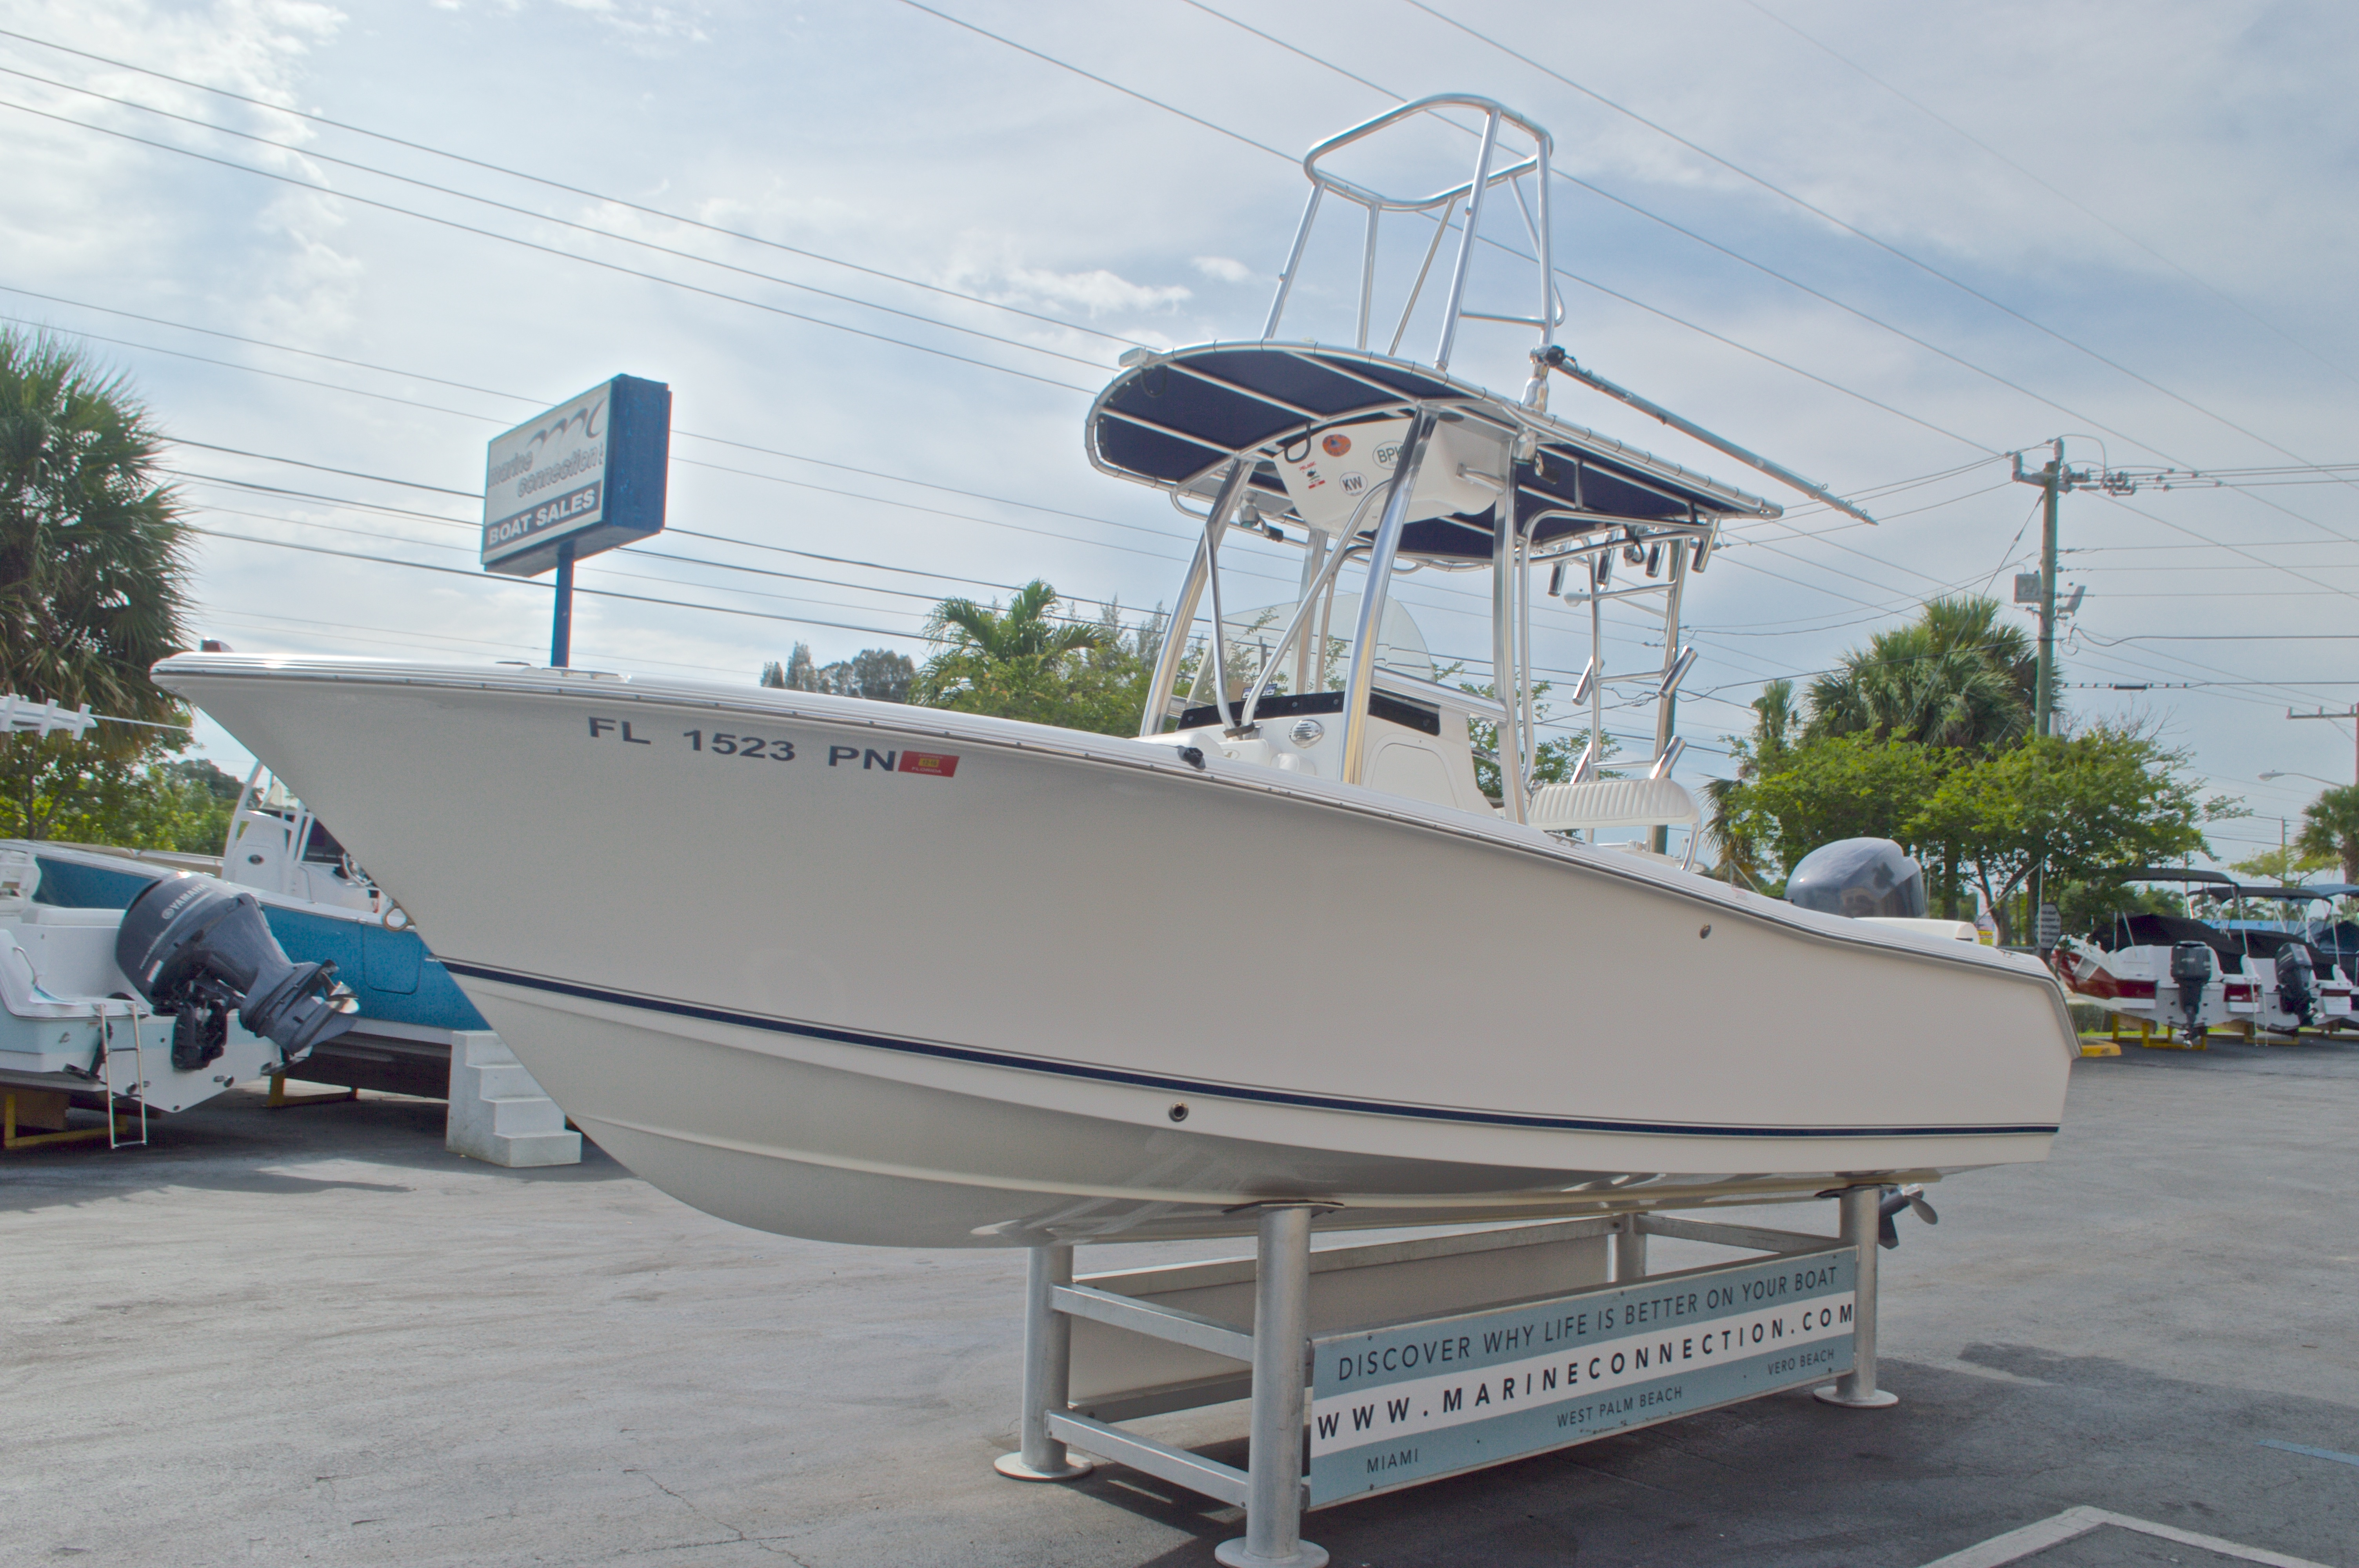 Thumbnail 11 for Used 2013 Sea Hunt 210 Triton boat for sale in West Palm Beach, FL